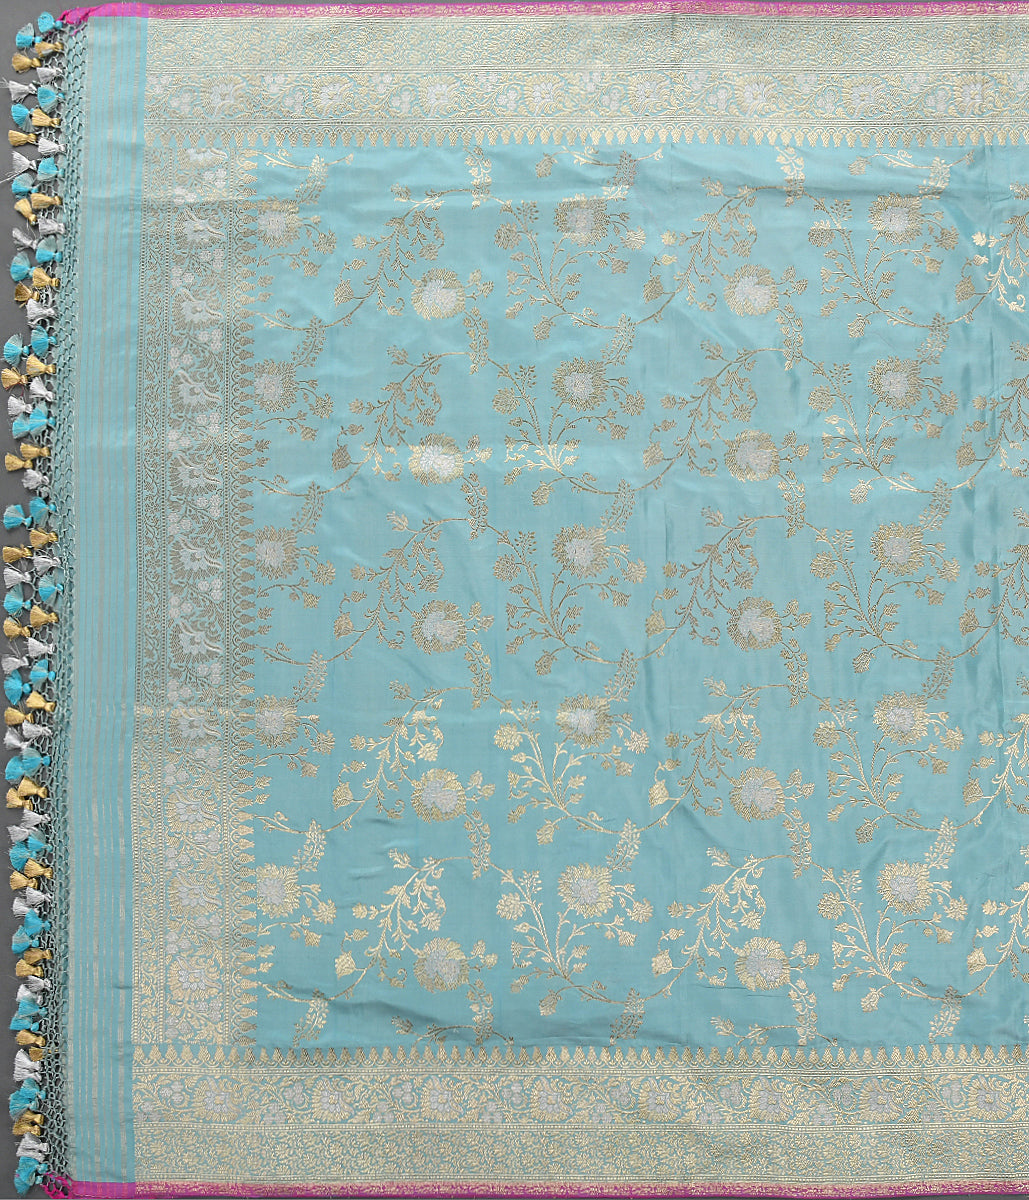 Handwoven Light Blue Kadhwa Jangla Dupatta with Sona Rupa Zari